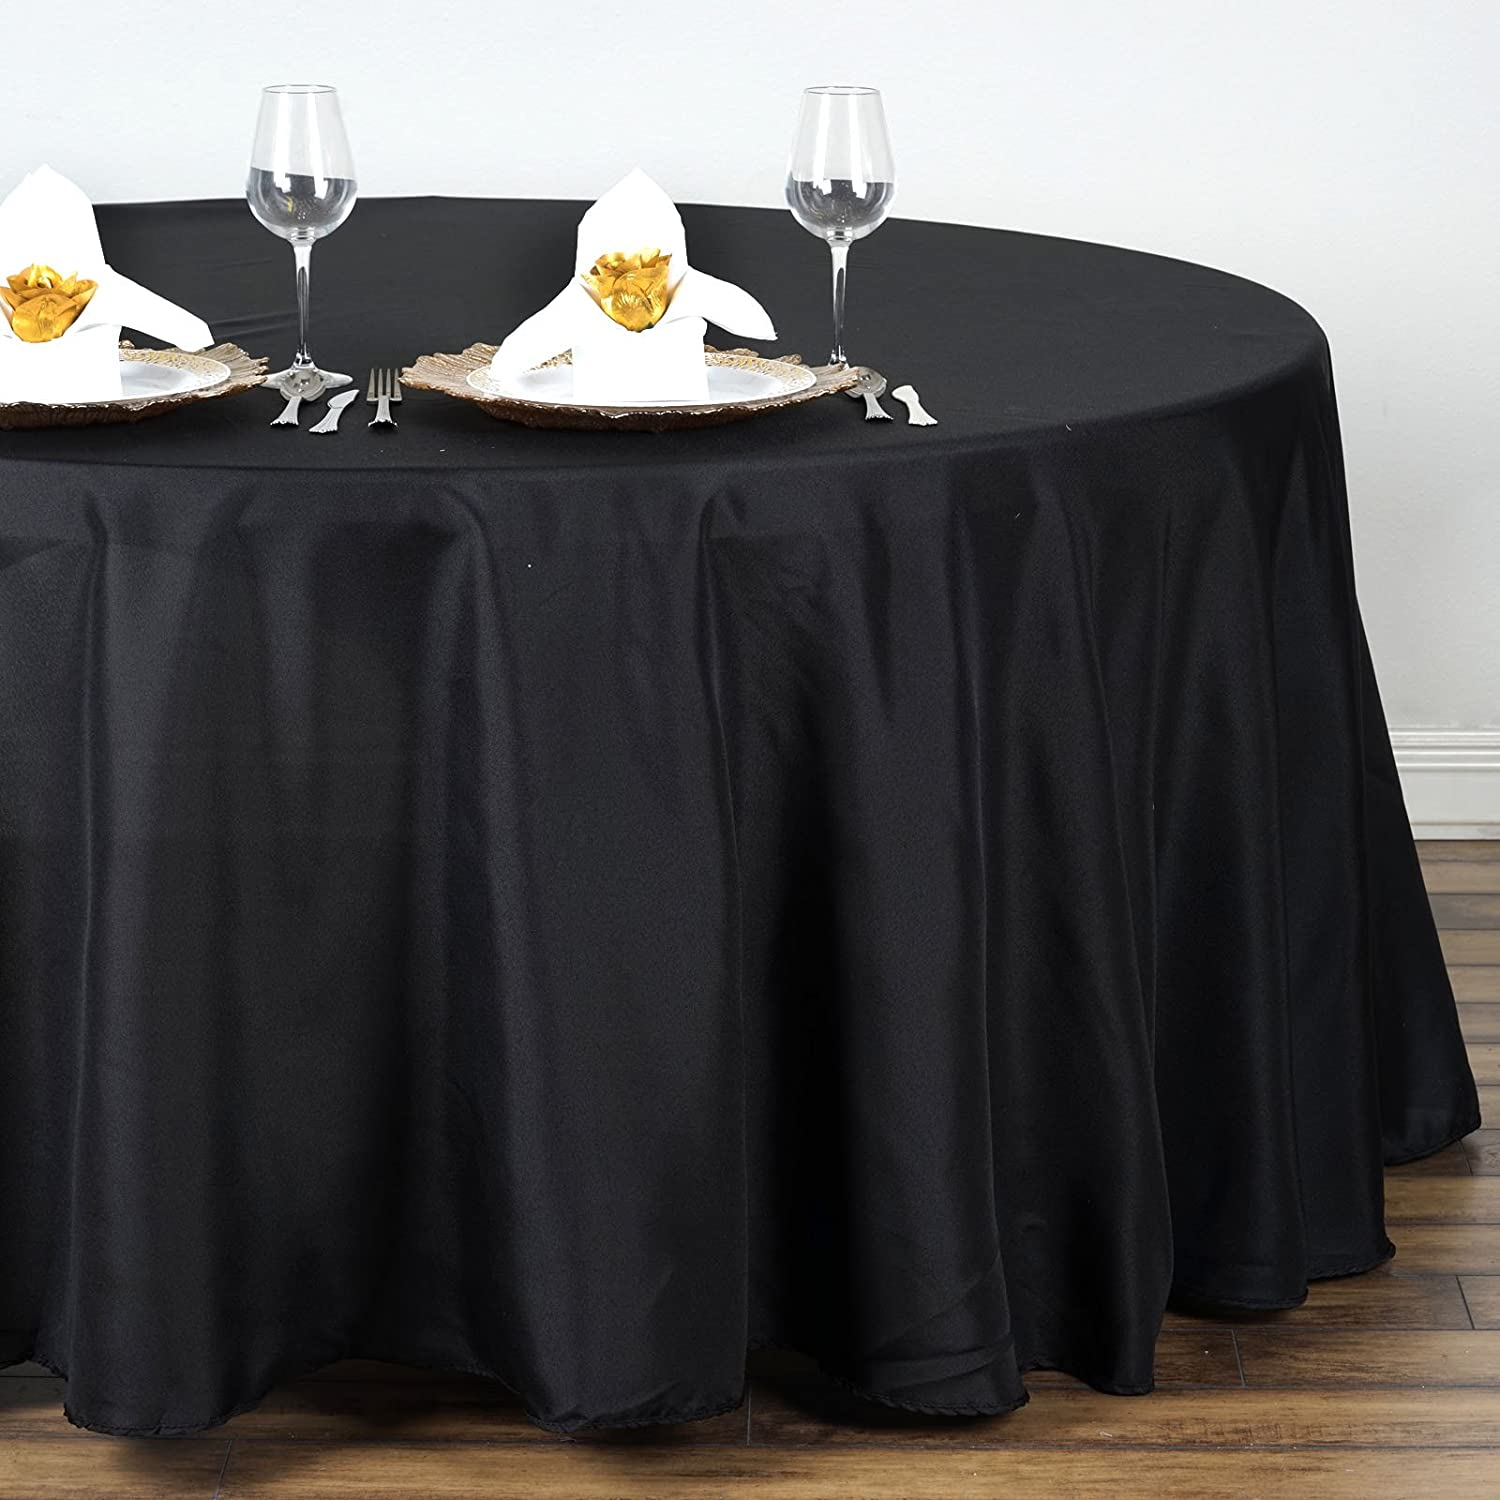 BalsaCircle 132-Inch Black Round Polyester Tablecloth Table Cover Linens for Wedding Party Events Kitchen Dining